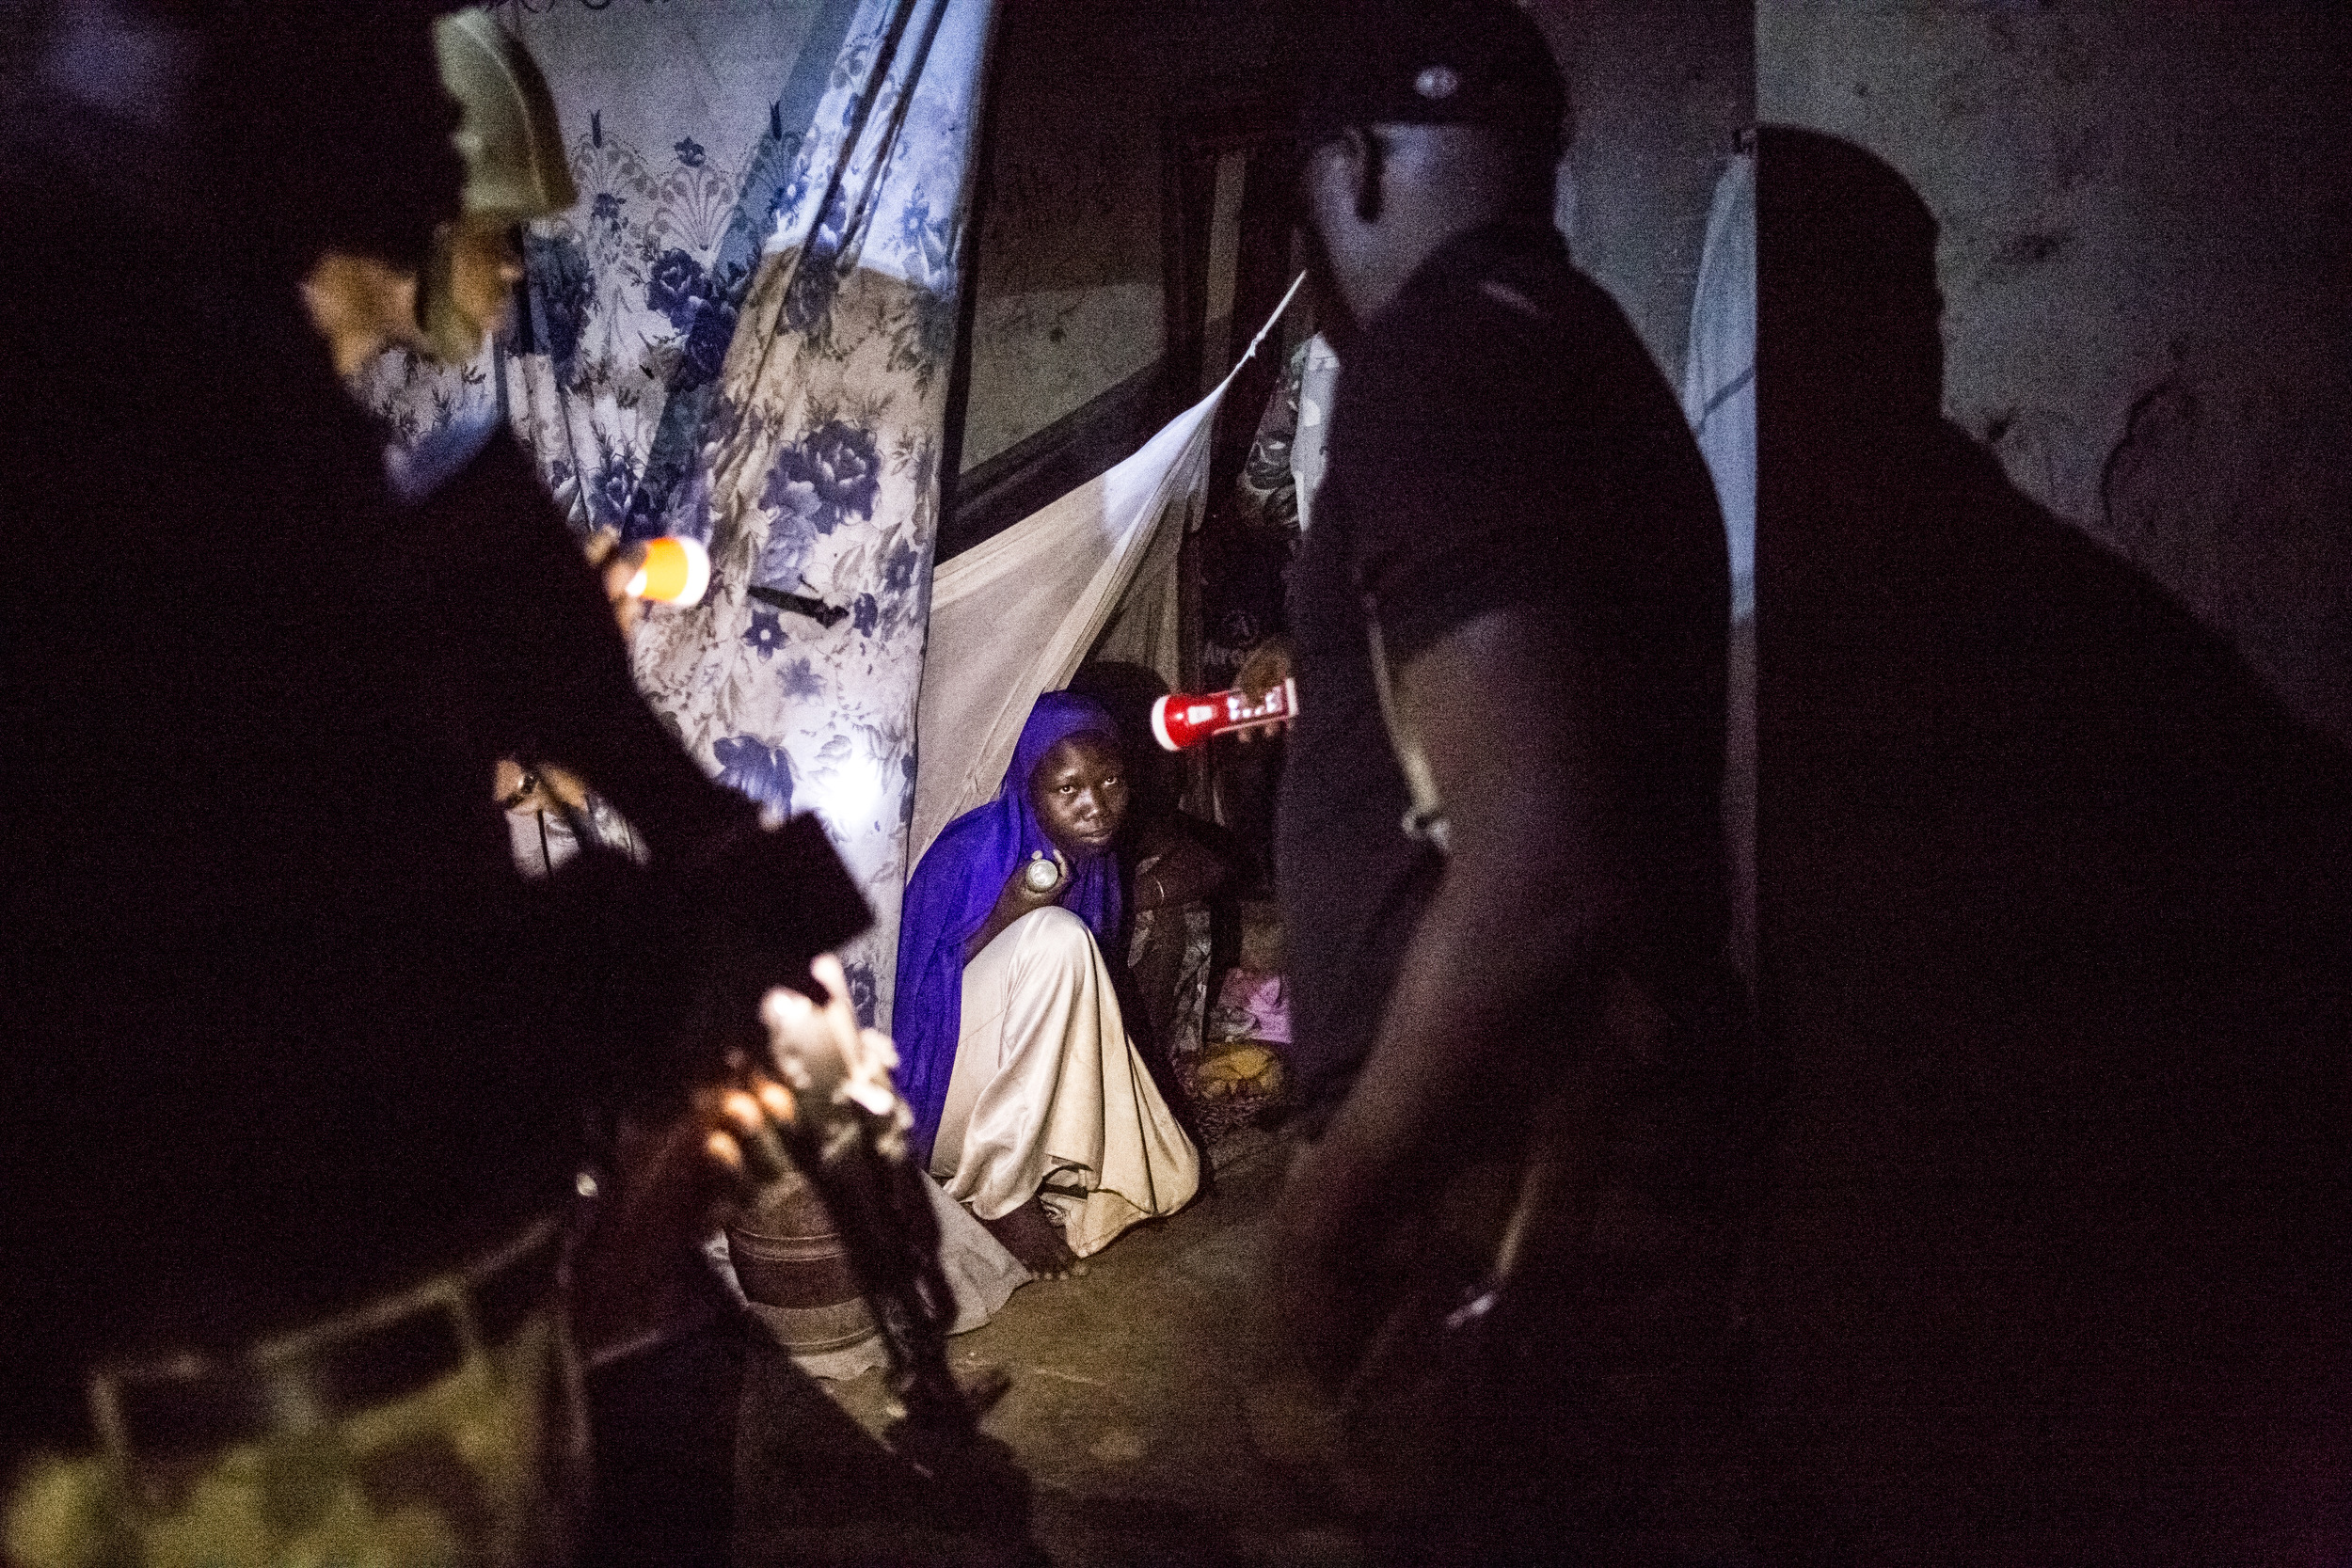 GLENNA GORDON |  www.glennagordon.com  |  @glennagordon   A young woman looks up at a solider who is checking her house for insurgents, weapons or other illicit goods during a cordon and search exercise after a suicide bombing on the outskirts of Maiduguri.   [ The New York Times Magazine ]